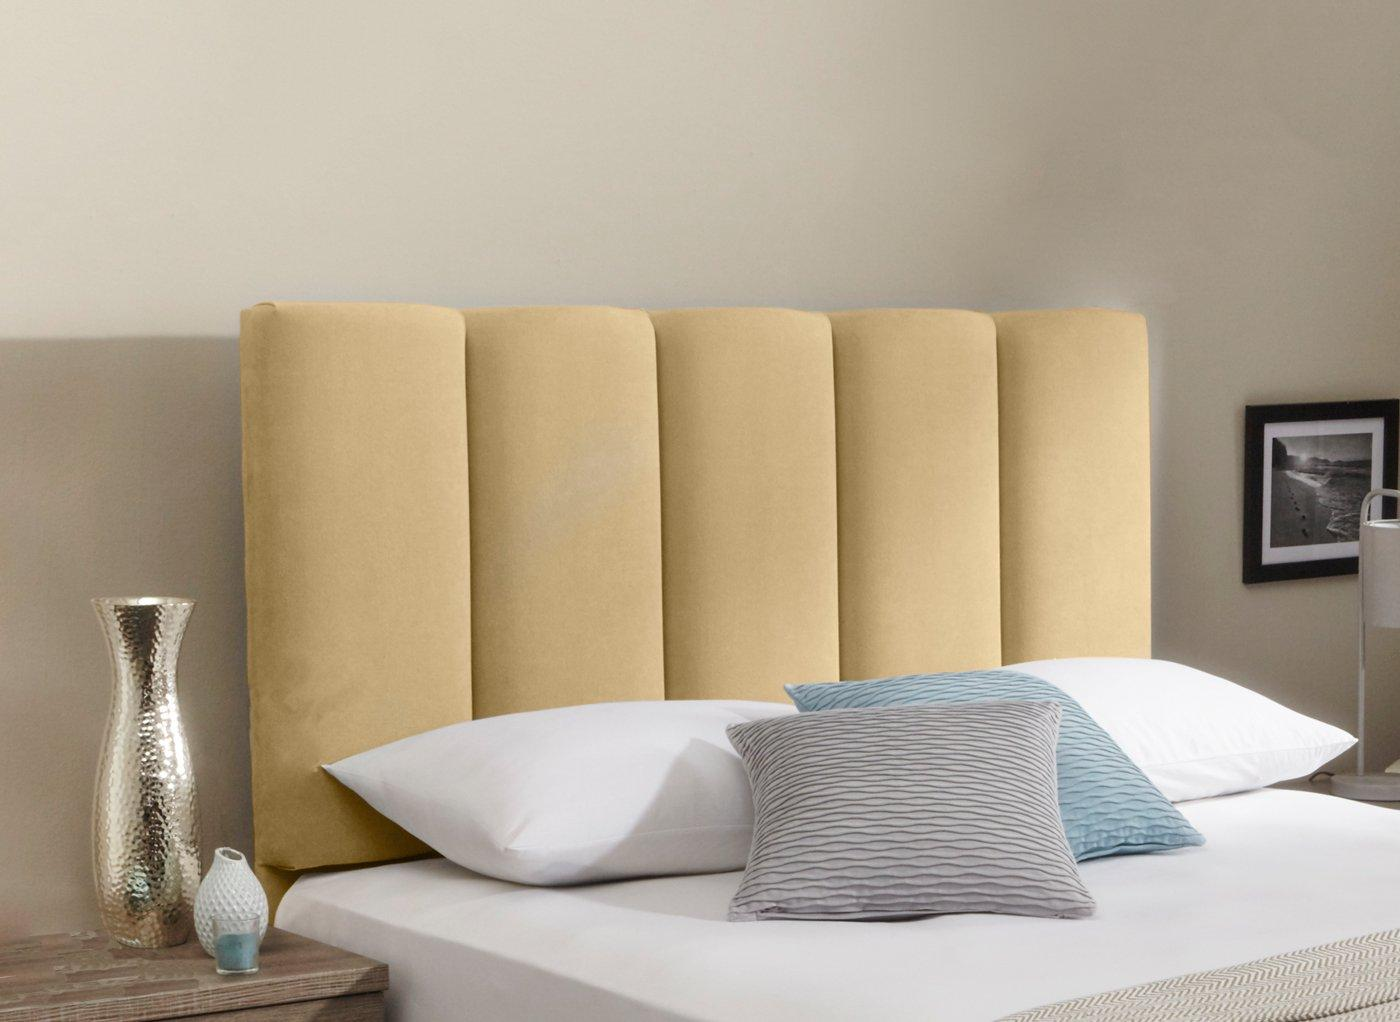 Gransmore Headboard 6'0 Super king CREAM